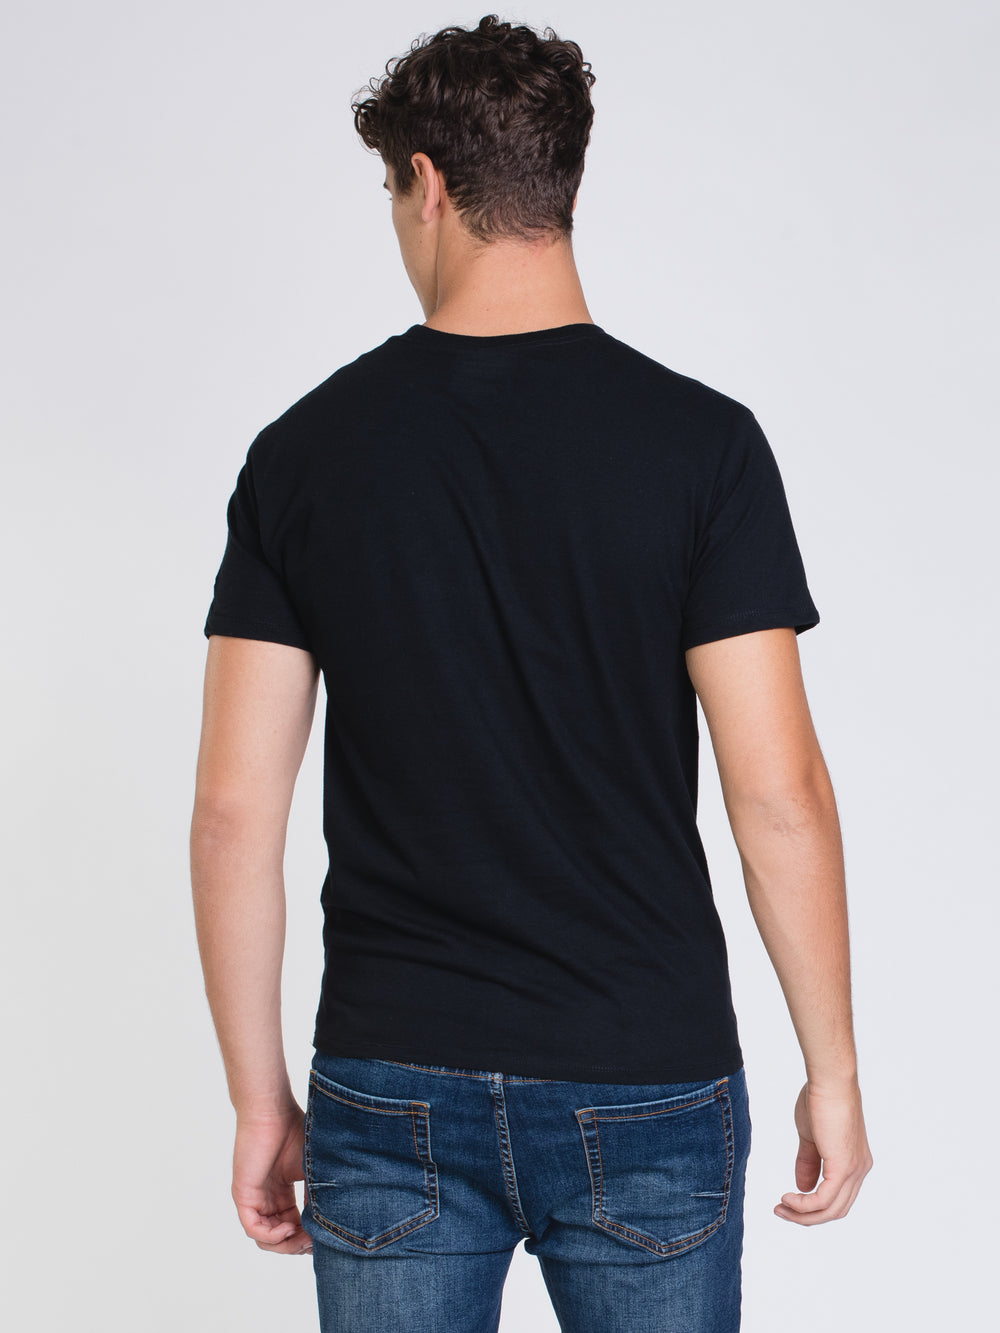 MENS COLOUR POP SHORT SLEEVE T-SHIRT - BLK